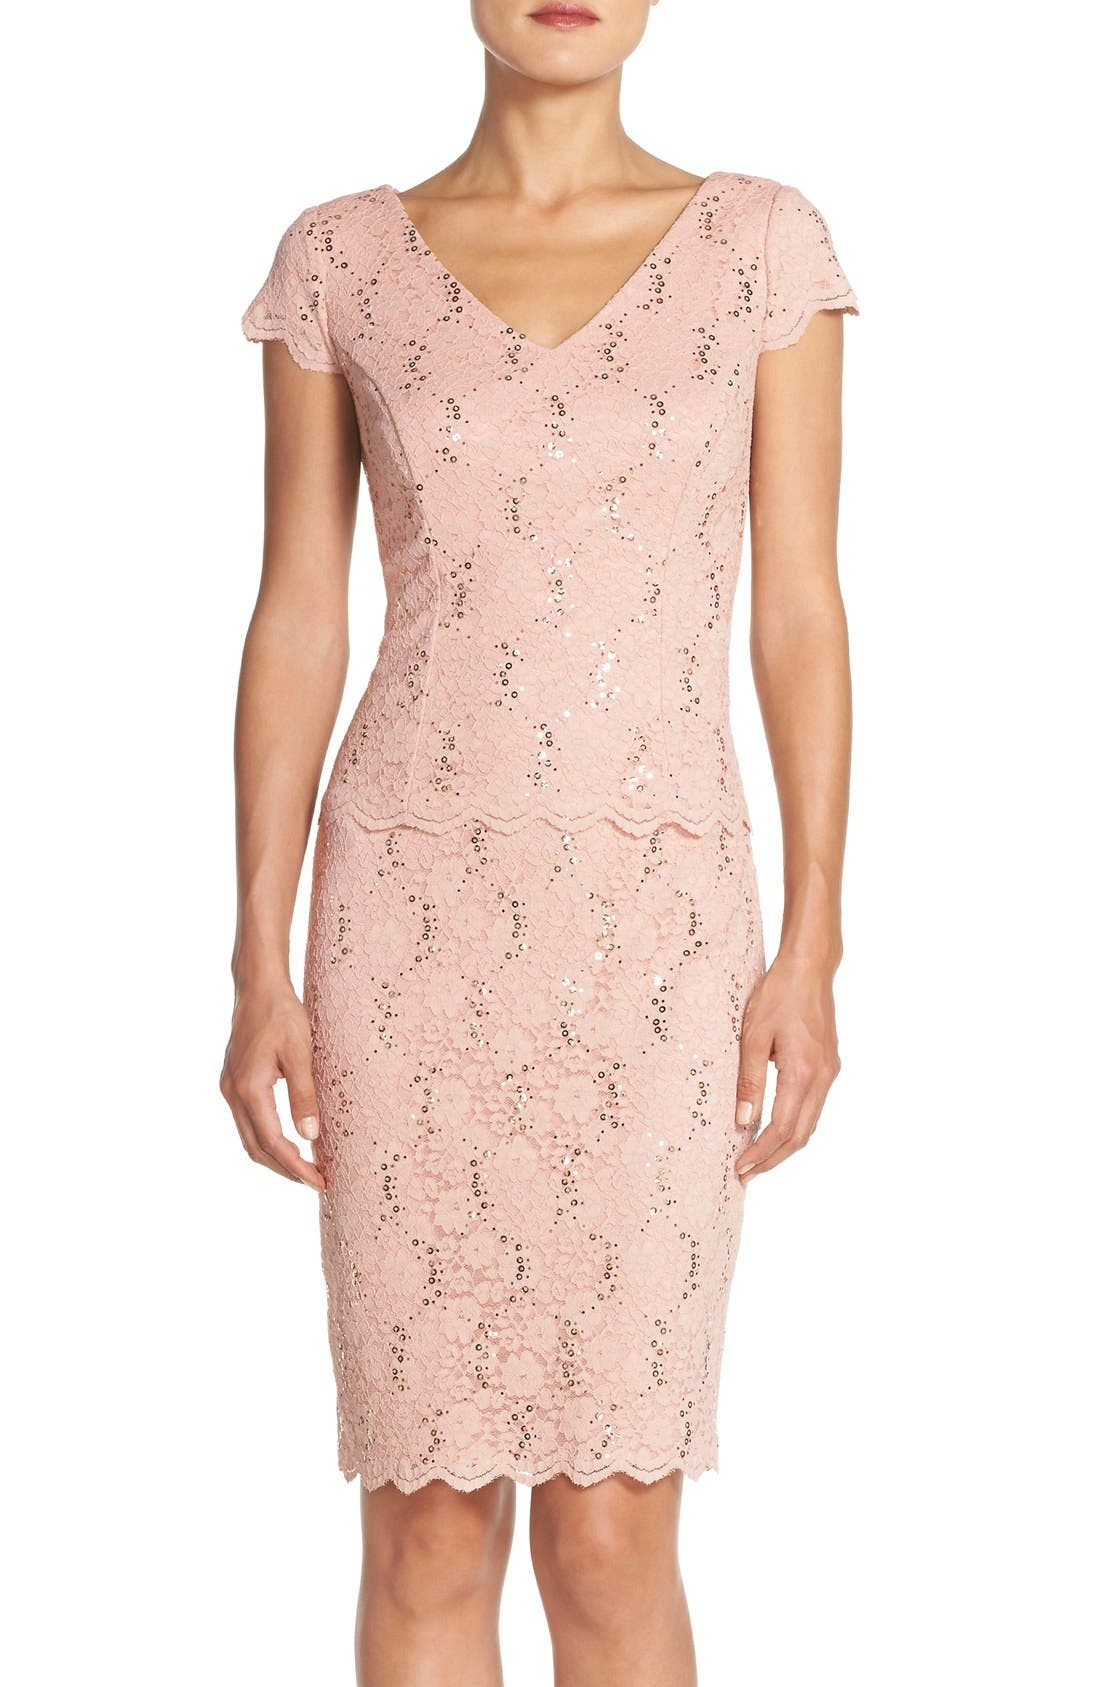 Alternate Image 1 Selected - Alex Evenings Embellished Lace Sheath Dress